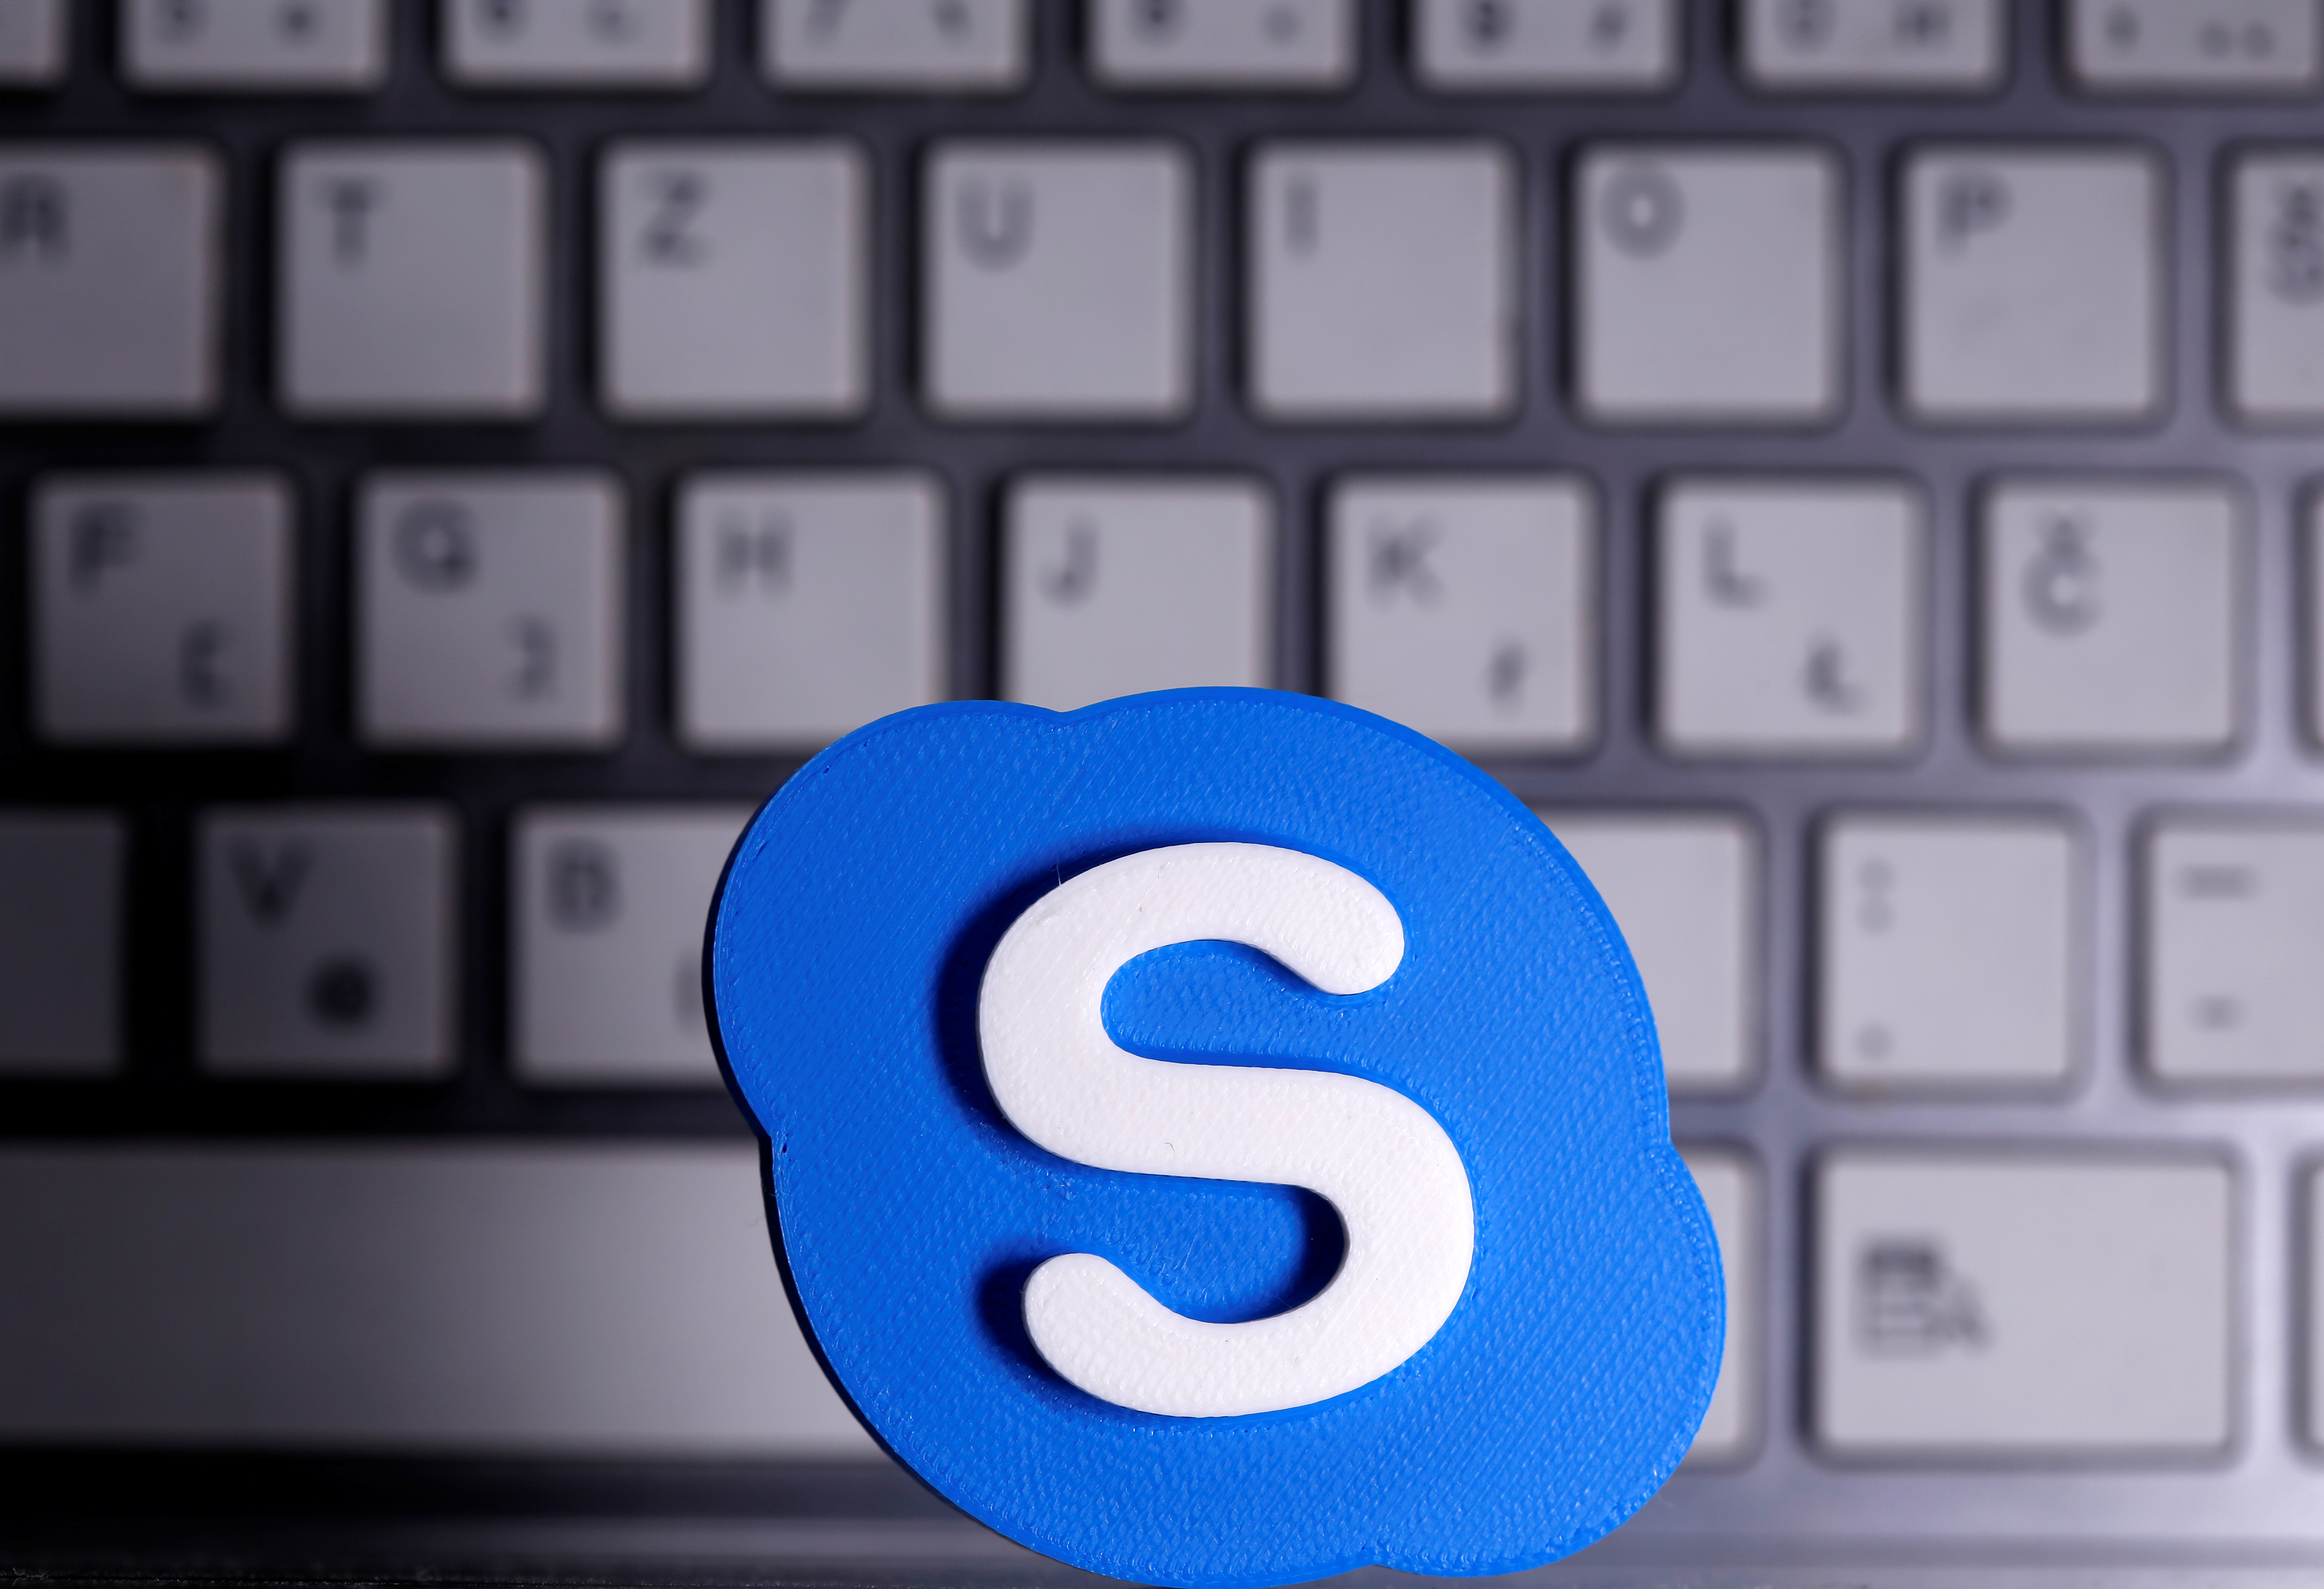 A 3D printed Skype logo is placed in front of a keyboard in this illustration taken April 12, 2020. REUTERS/Dado Ruvic/Illustration